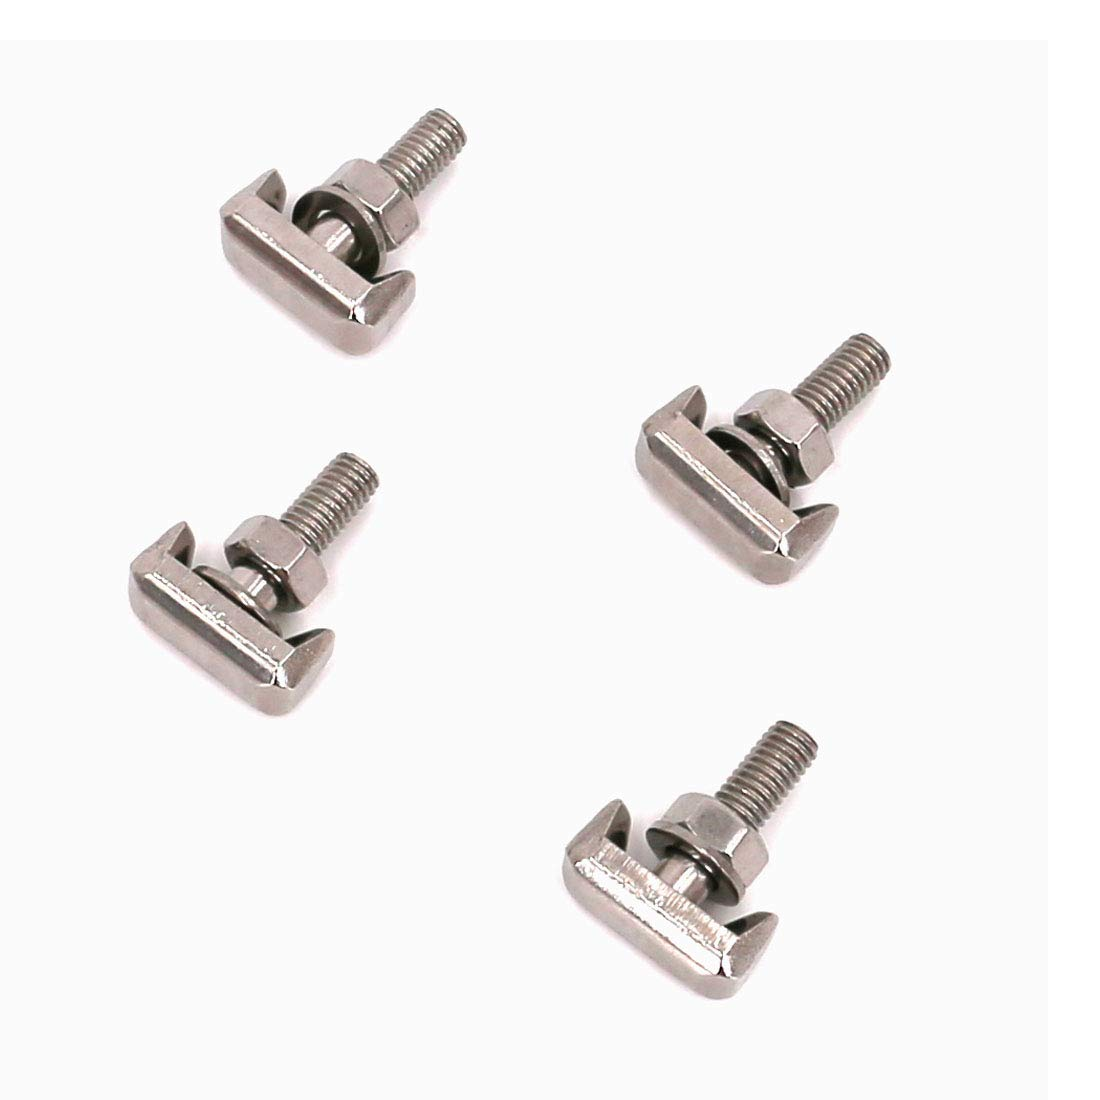 UTSAUTO Battery Terminal T-Bolt Kit 19116852 64740 Battery Cable Tensioner Bolt Screw 4-Pack for GMC Chevrolet BMW, Replaces 6X0-915-138 6X0915138 61128373946